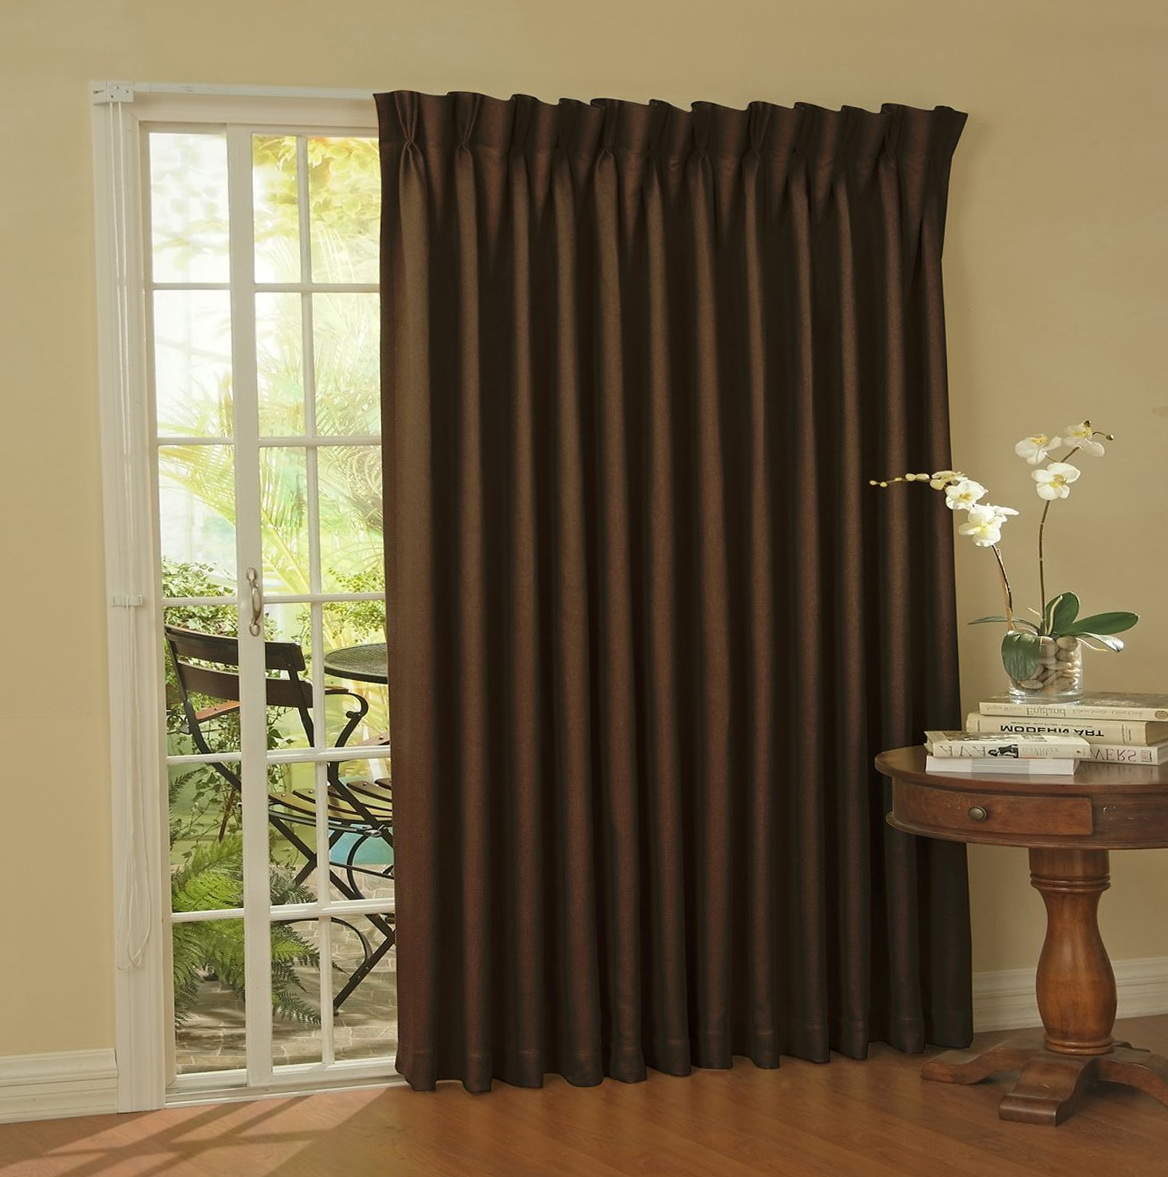 Patio Door Curtains And Drapes Home Design Ideas